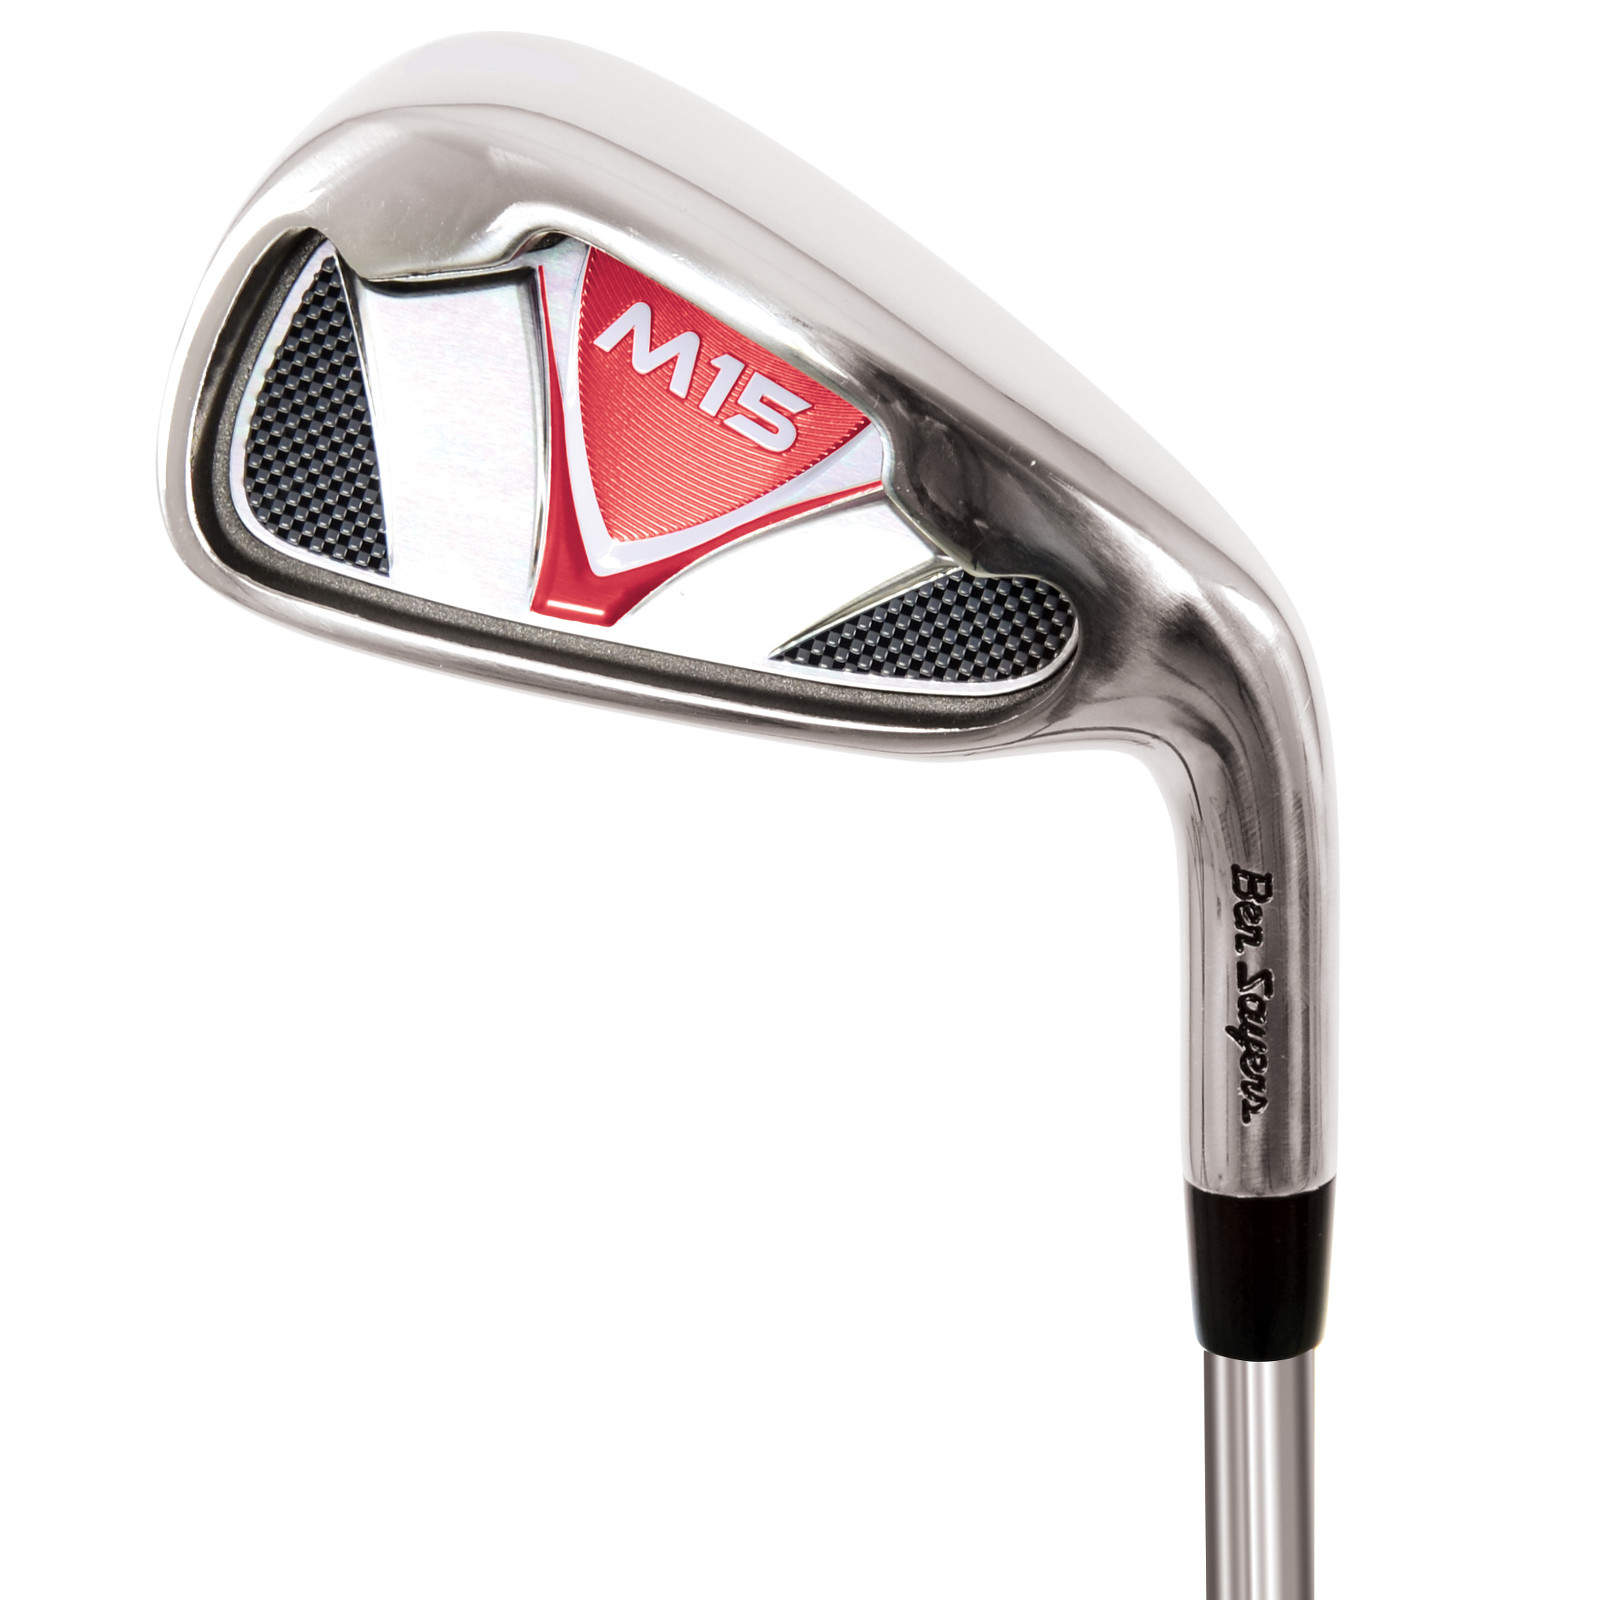 Ben-Sayers-Golf-Club-Clearance-Offer-Left-amp-Right-Handed-Irons